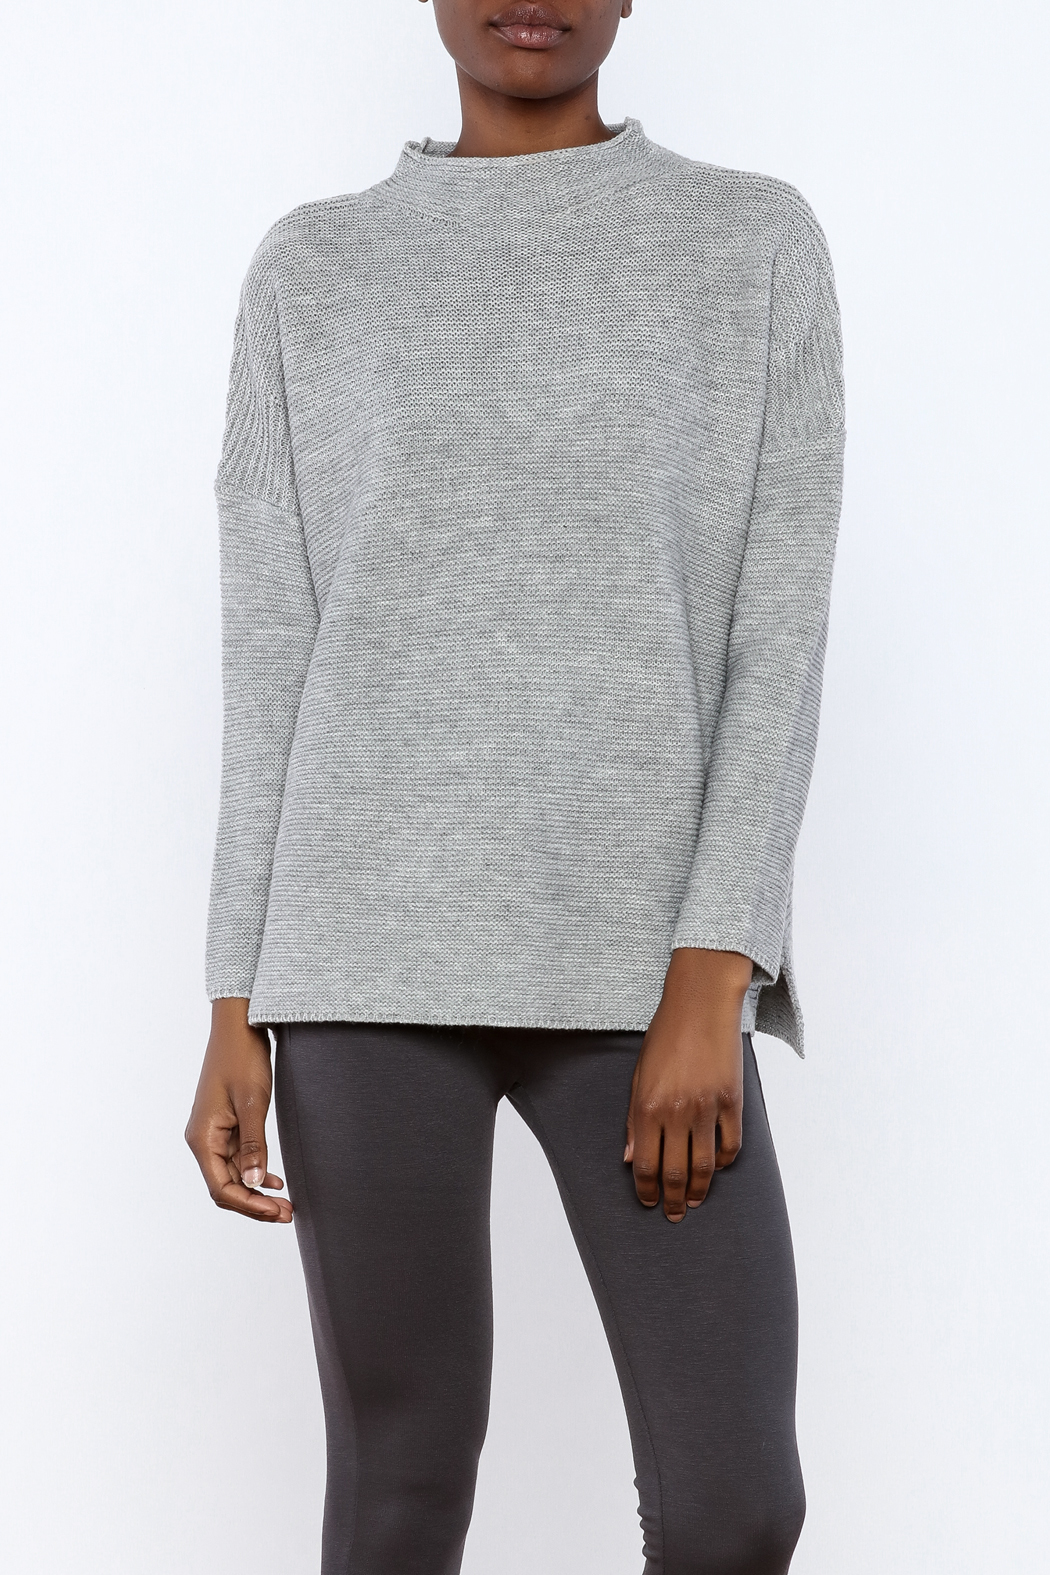 Knot Sisters Mock Turtleneck Sweater From Indiana By Luxe